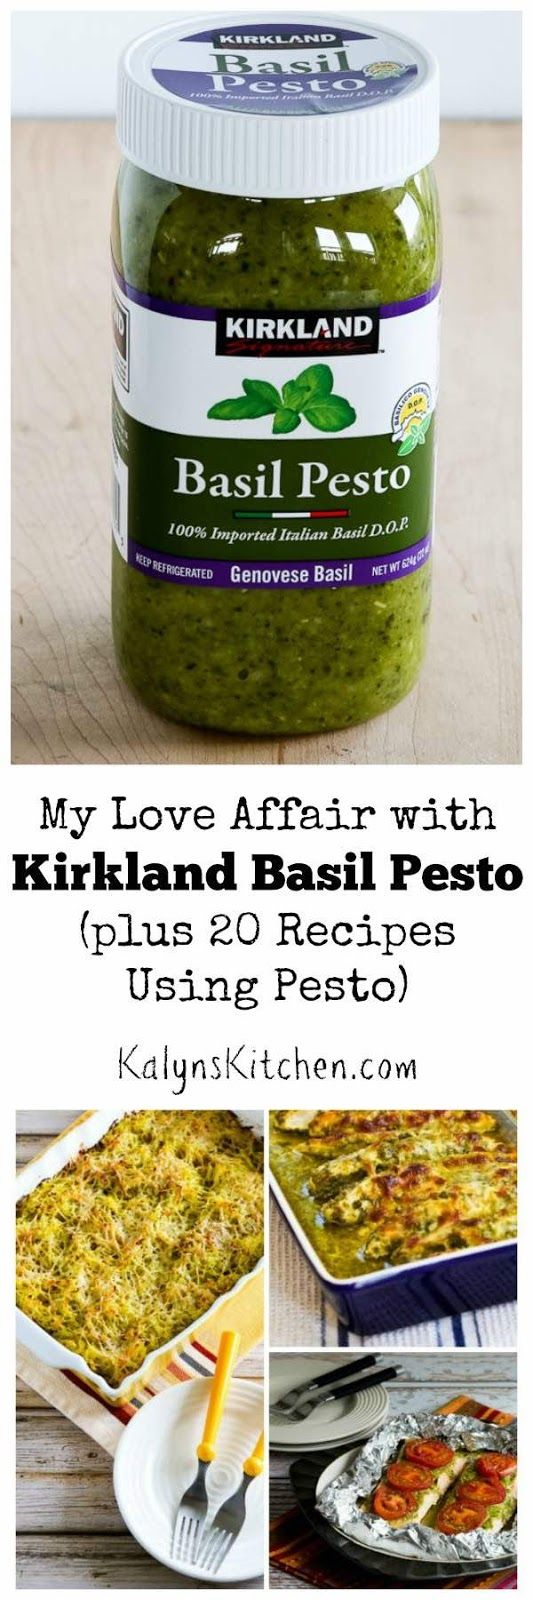 Kalyn's Kitchen Picks: Kirkland Basil Pesto, plus 20 recipes using Pesto from Kalyn and other bloggers! Nothing can beat fresh homemade pesto but this is great when you don't have fresh basil. [found on KalynsKitchen.com].   Most of these are doable